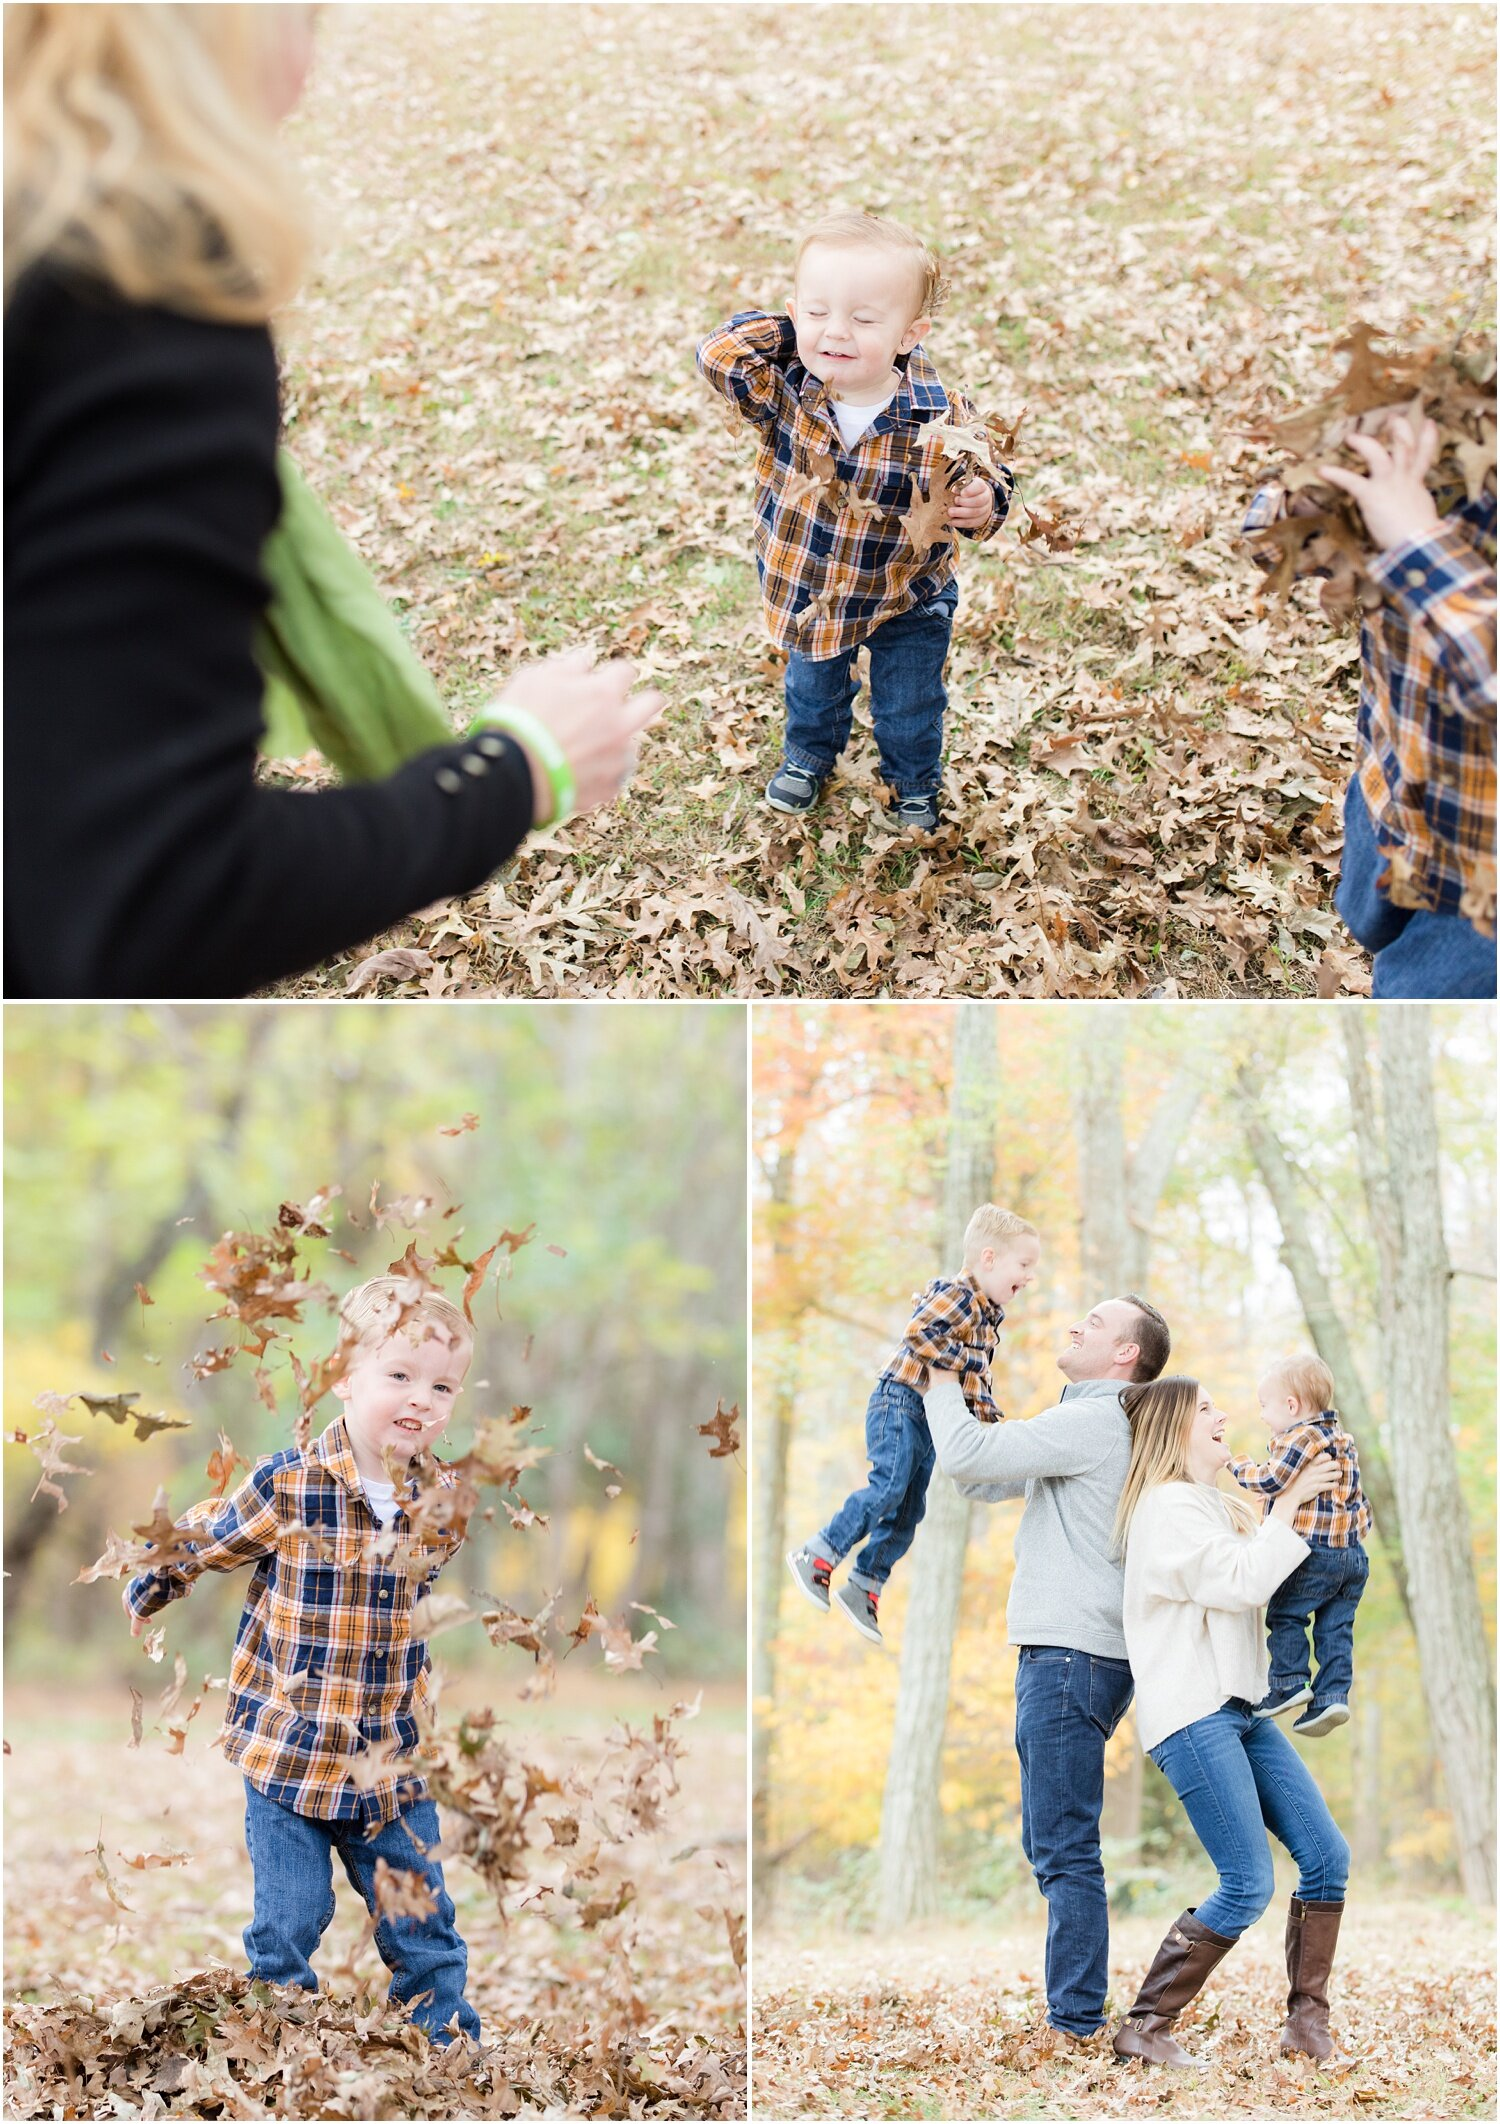 Fun family photos in the Fall at Allaire State Park.